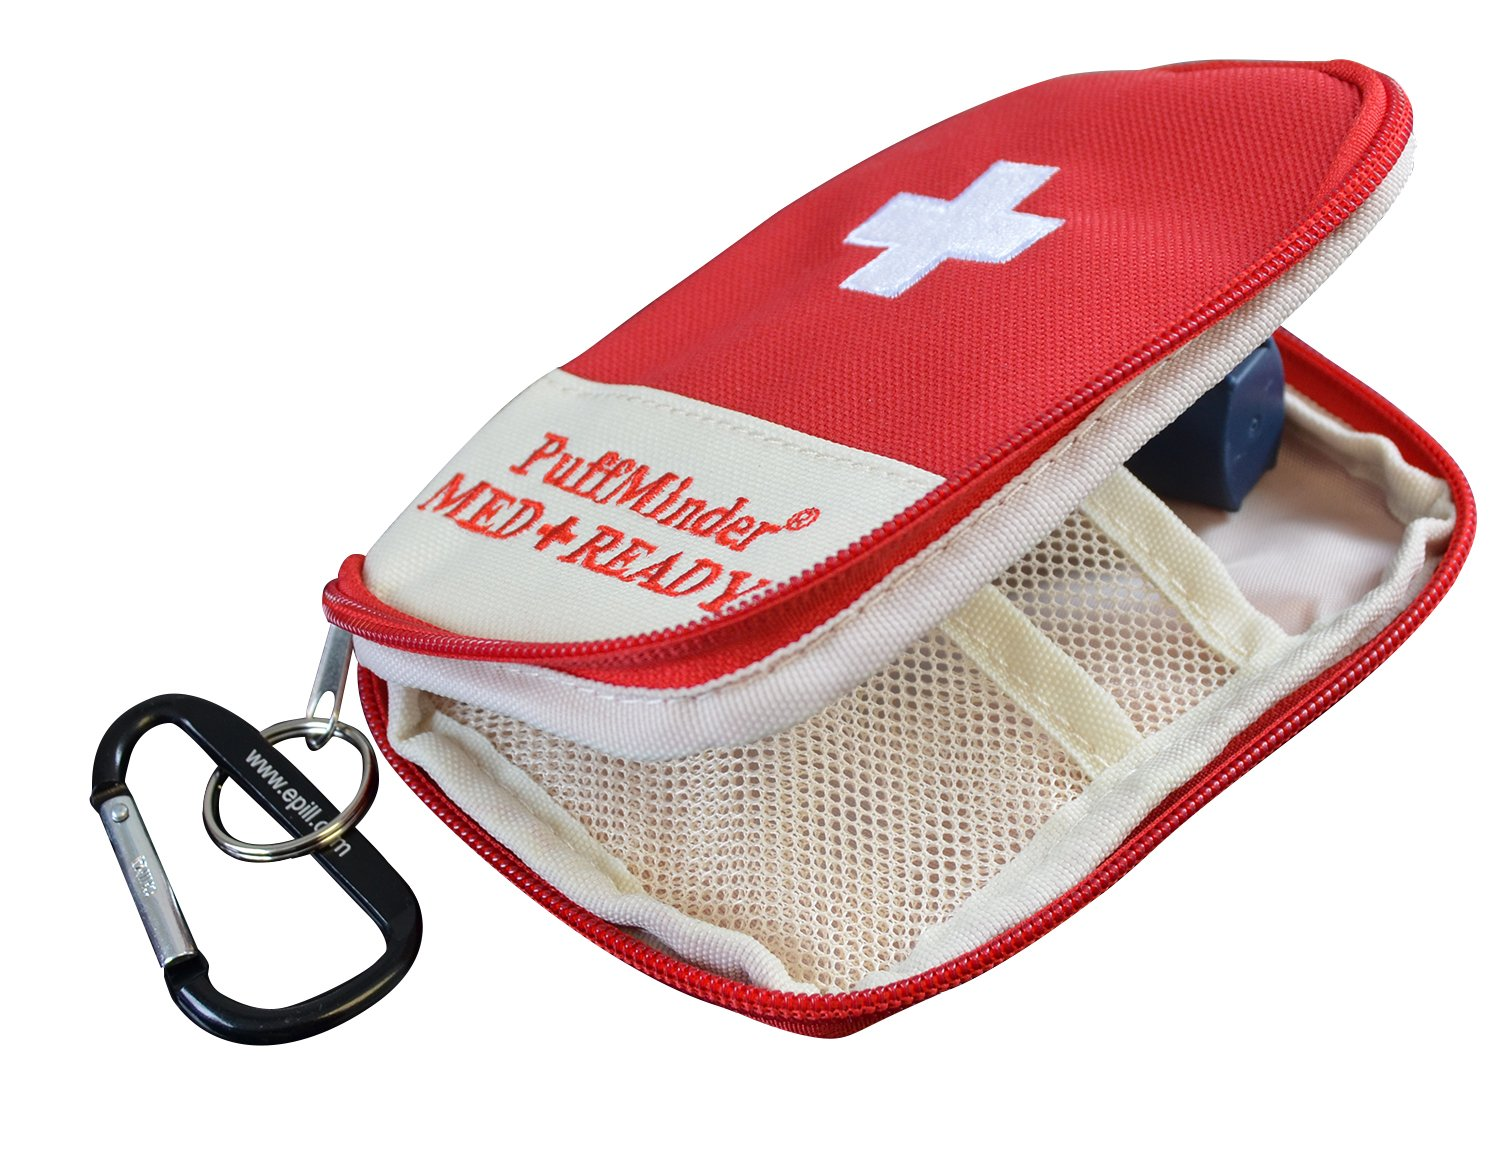 e-Pill | Asthma Attack Kit, PuffMinder Inhaler Case with Key Ring and Carabiner. Keep Your Inhaler Close to You When You Need it Most. by e-pill Medication Reminders